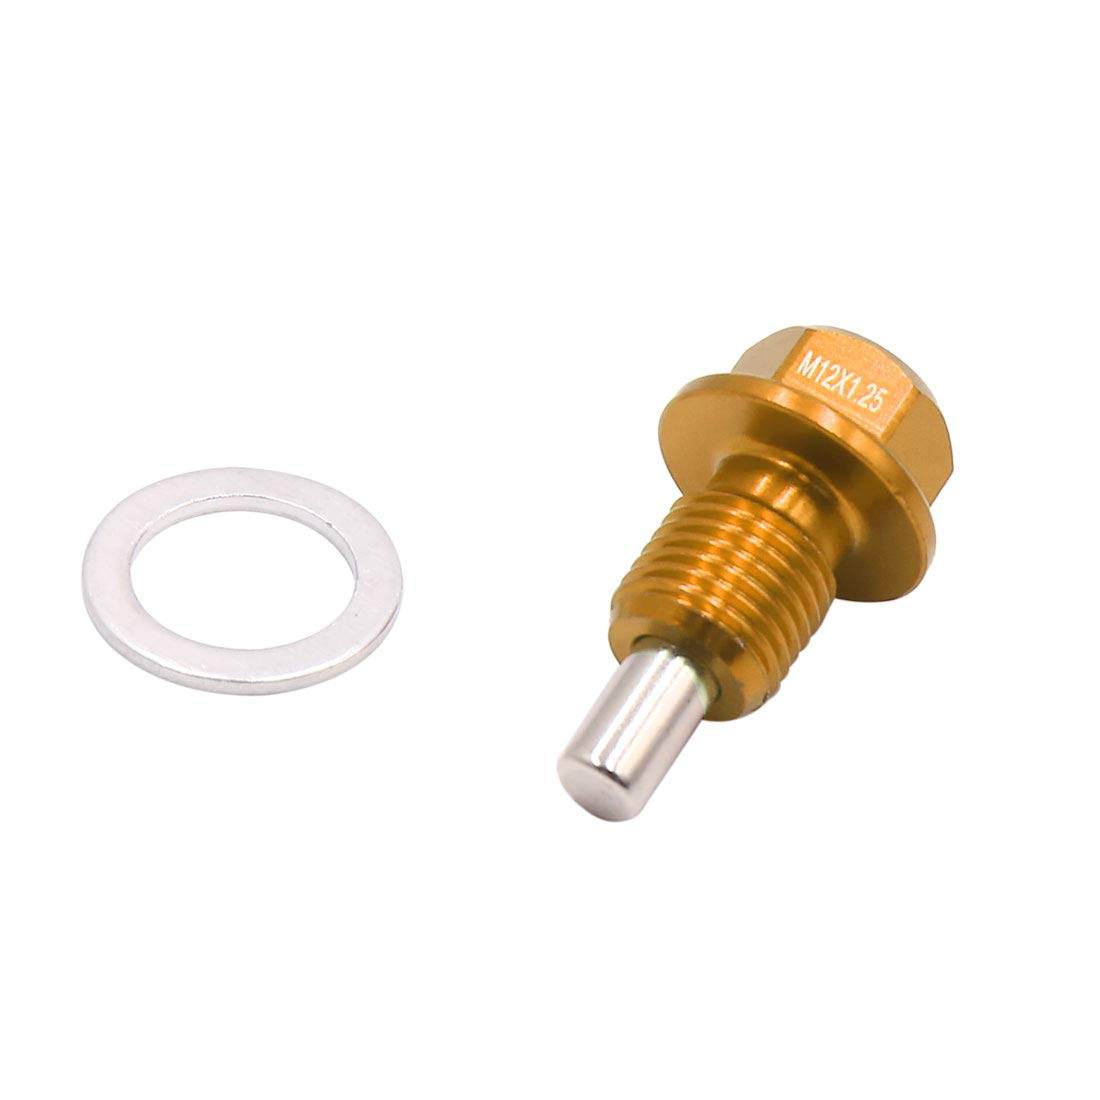 uxcell M12 x 1.25mm Thread Gold Tone Magnetic Auto Car Oil Pan Drain Bolt Kit w Washer